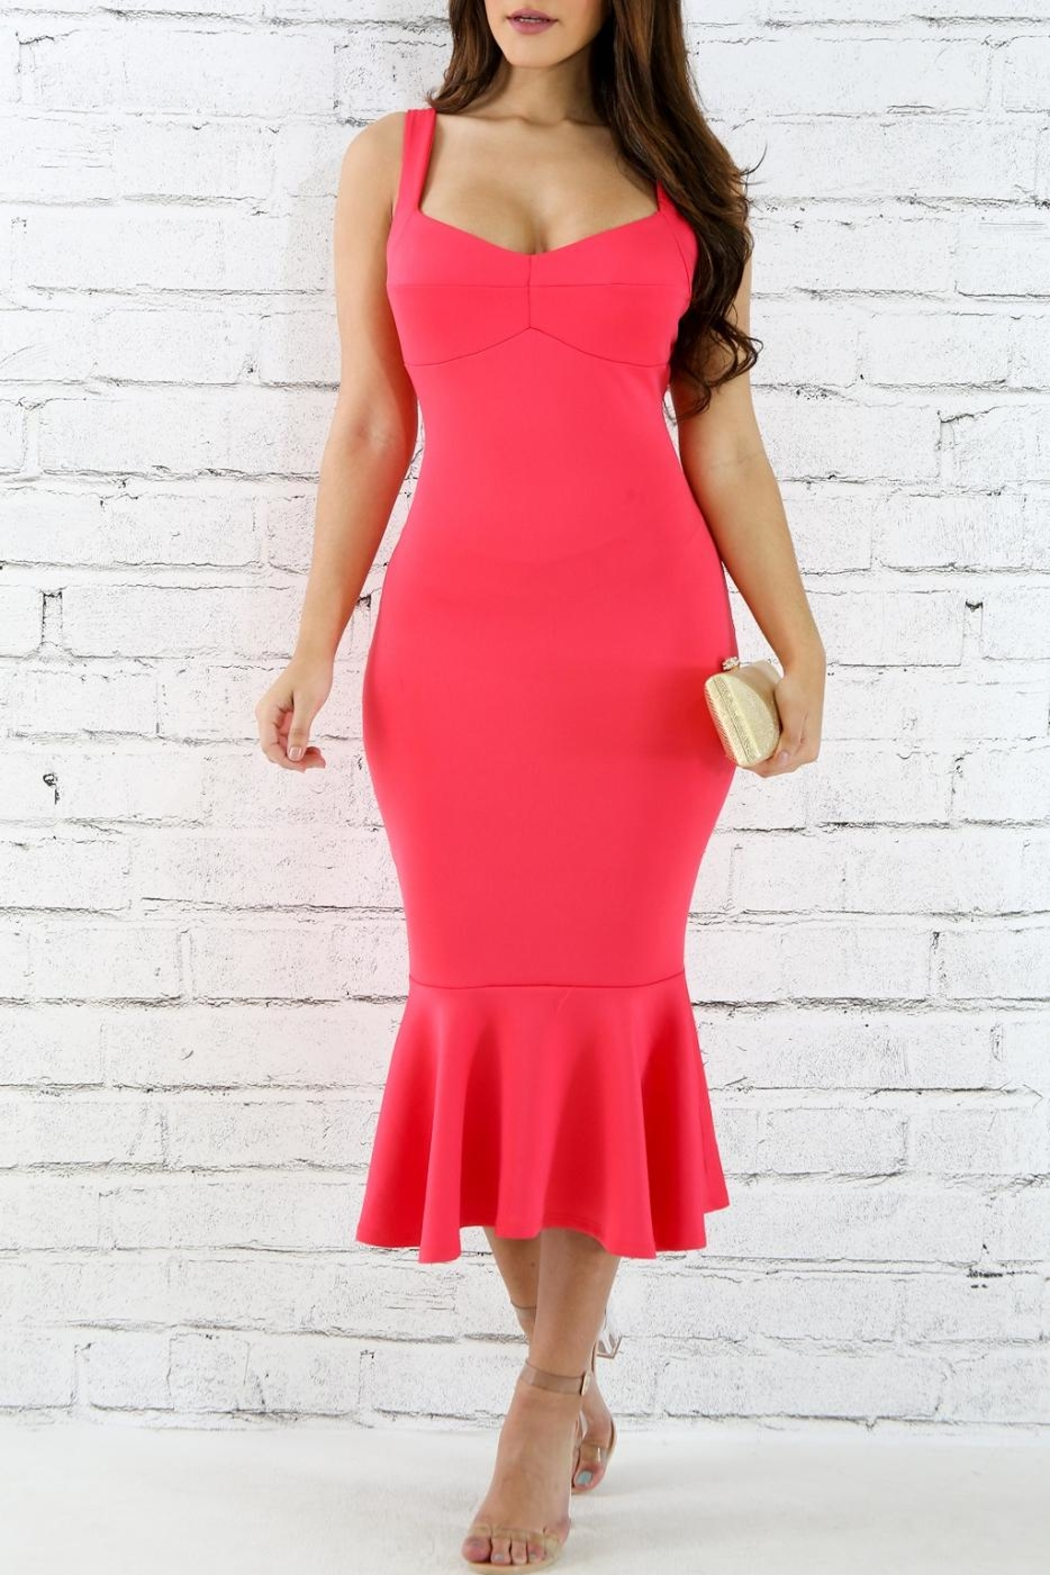 Good Time Coral Flare Dress - Main Image